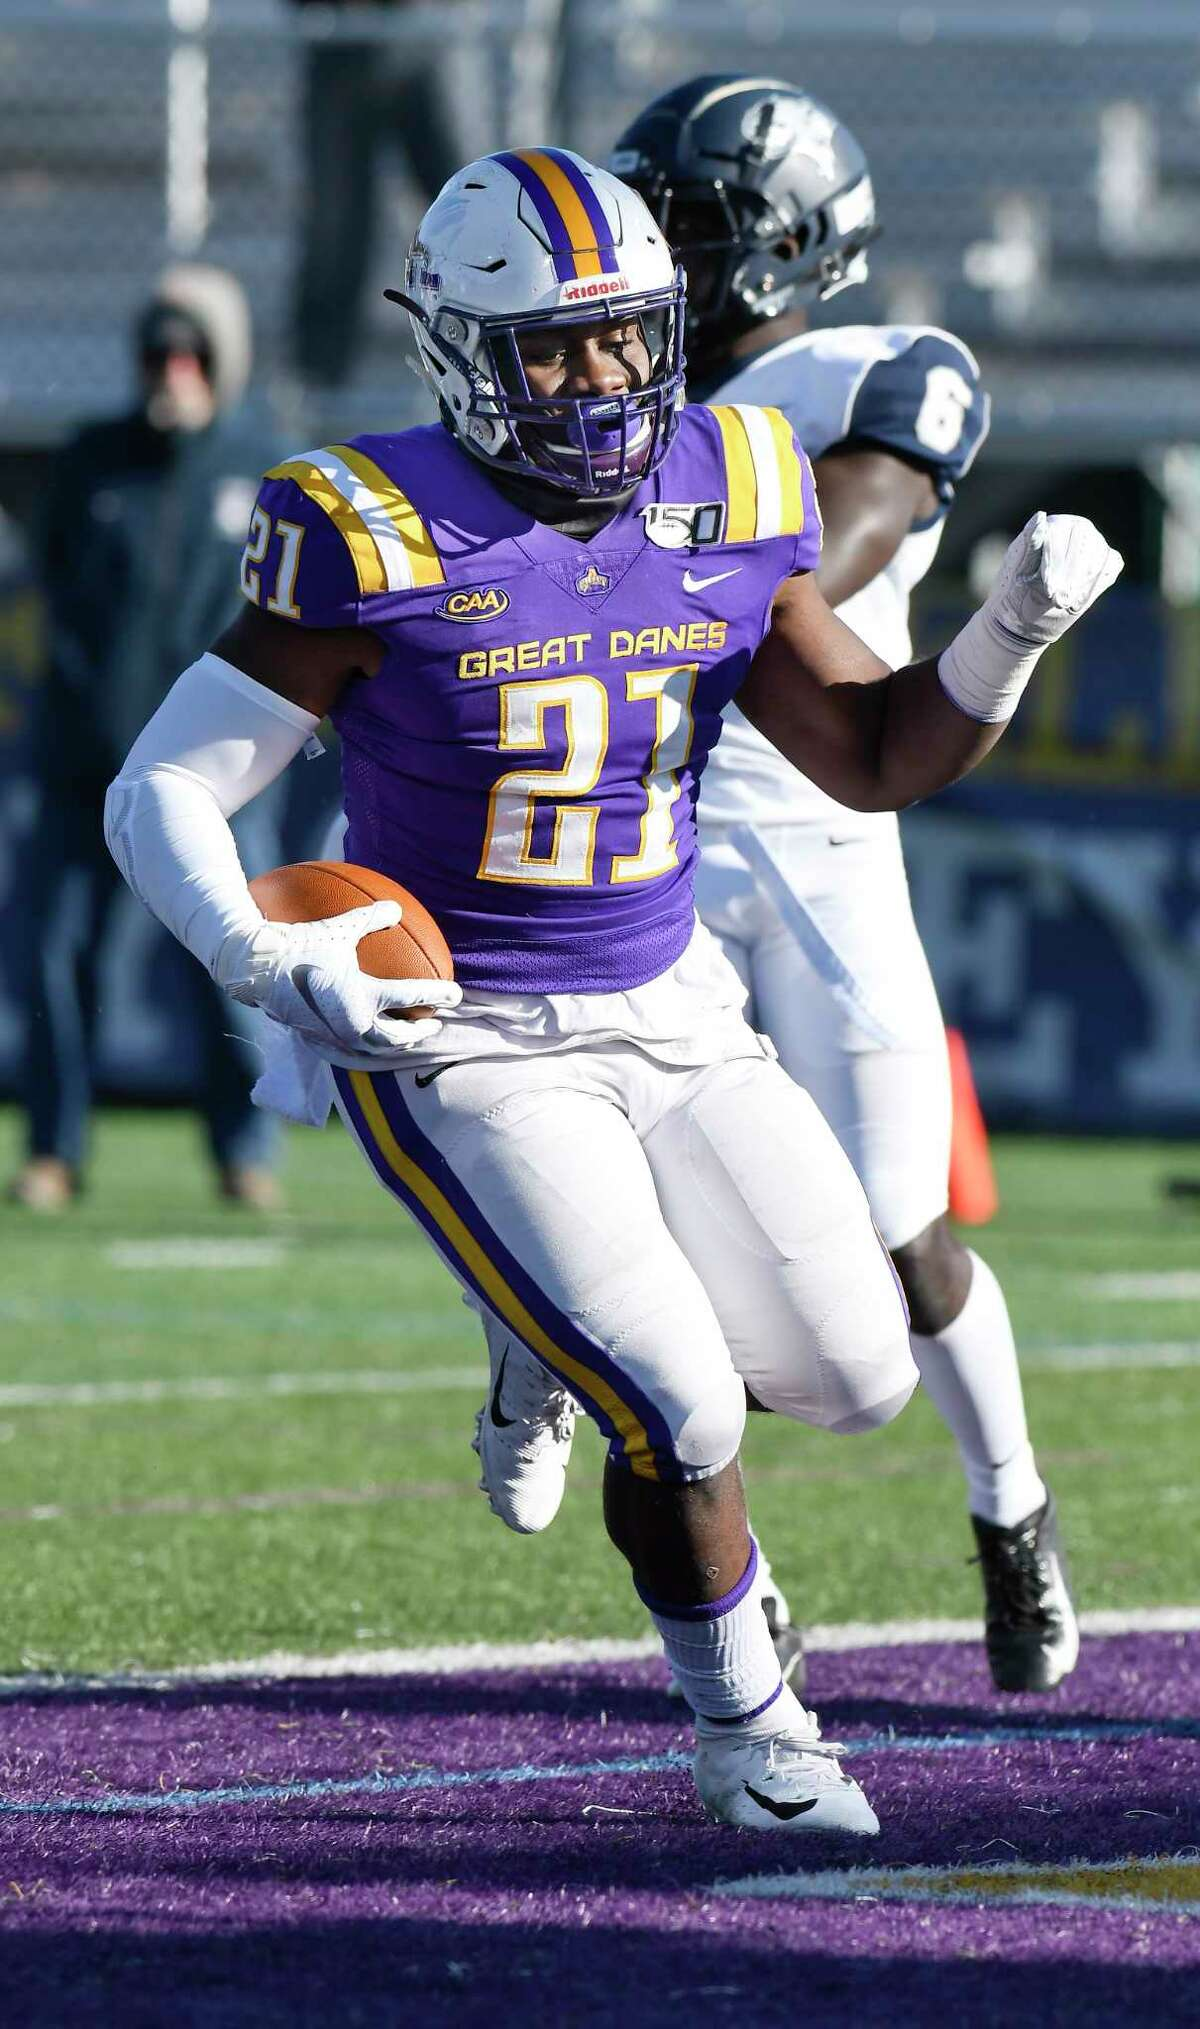 University at Albany running back Karl Mofor (21) scores a touchdown against New Hampshire during the first half of an NCAA football game Saturday, Nov. 16, 2019, in Albany, N.Y. University at Albany won the game 24-17.